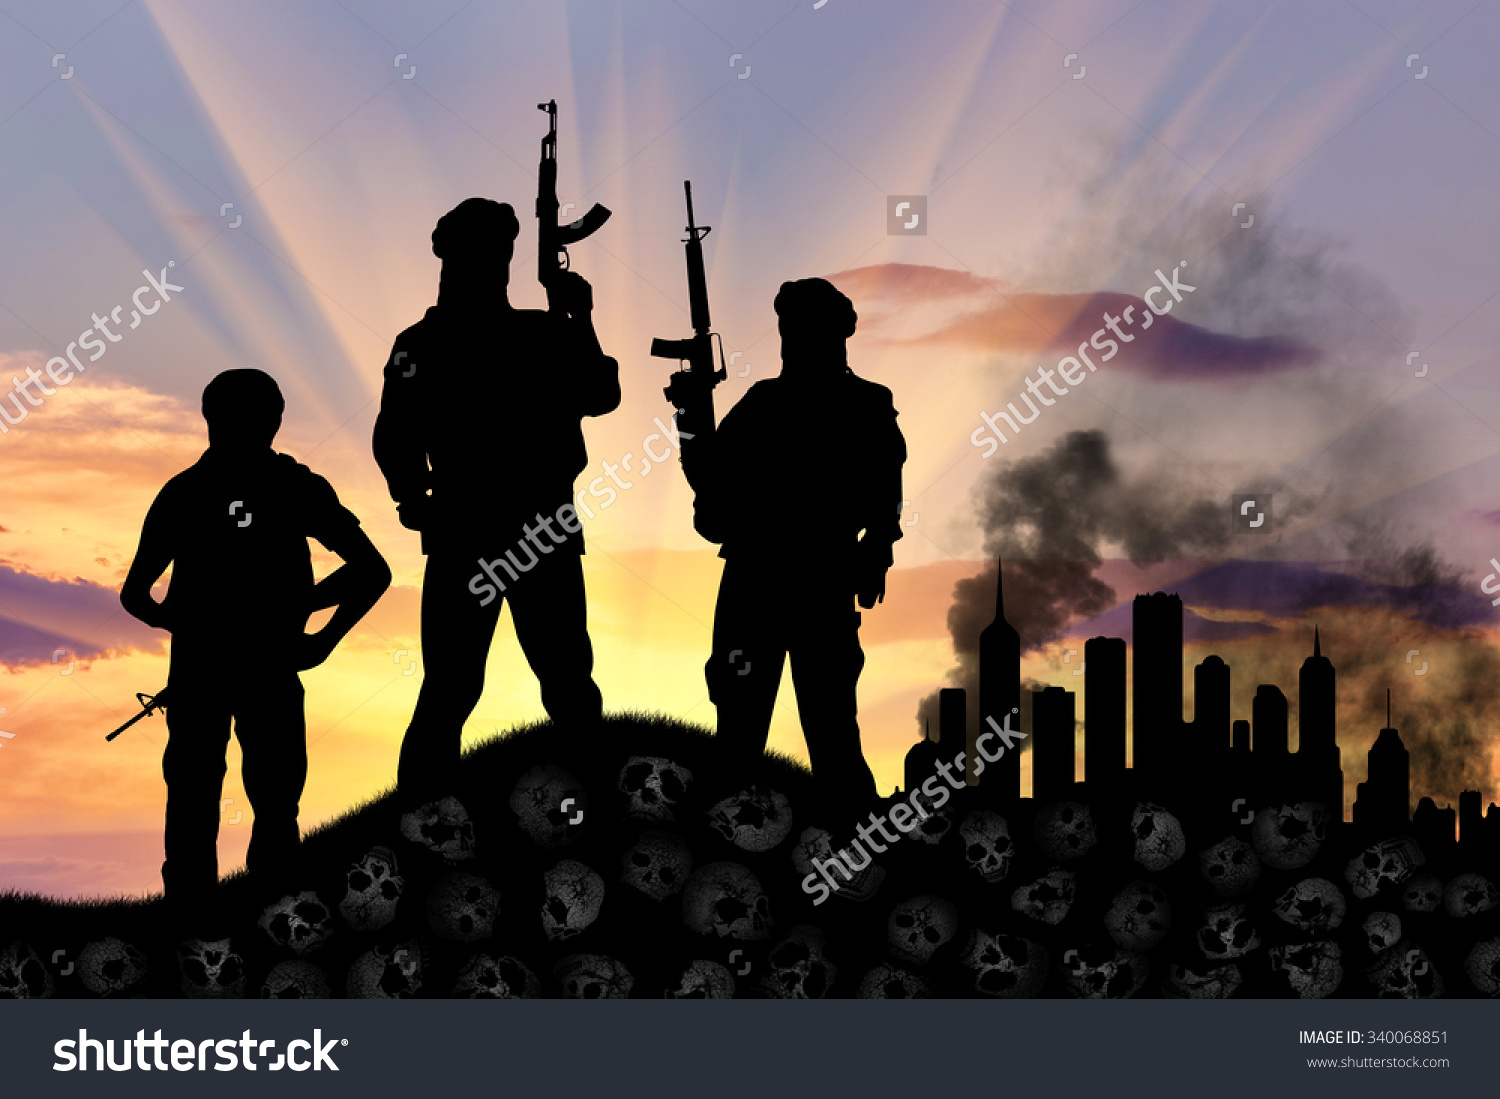 Concept Terrorist Attack Silhouette Terrorists Rifle Stock Photo.